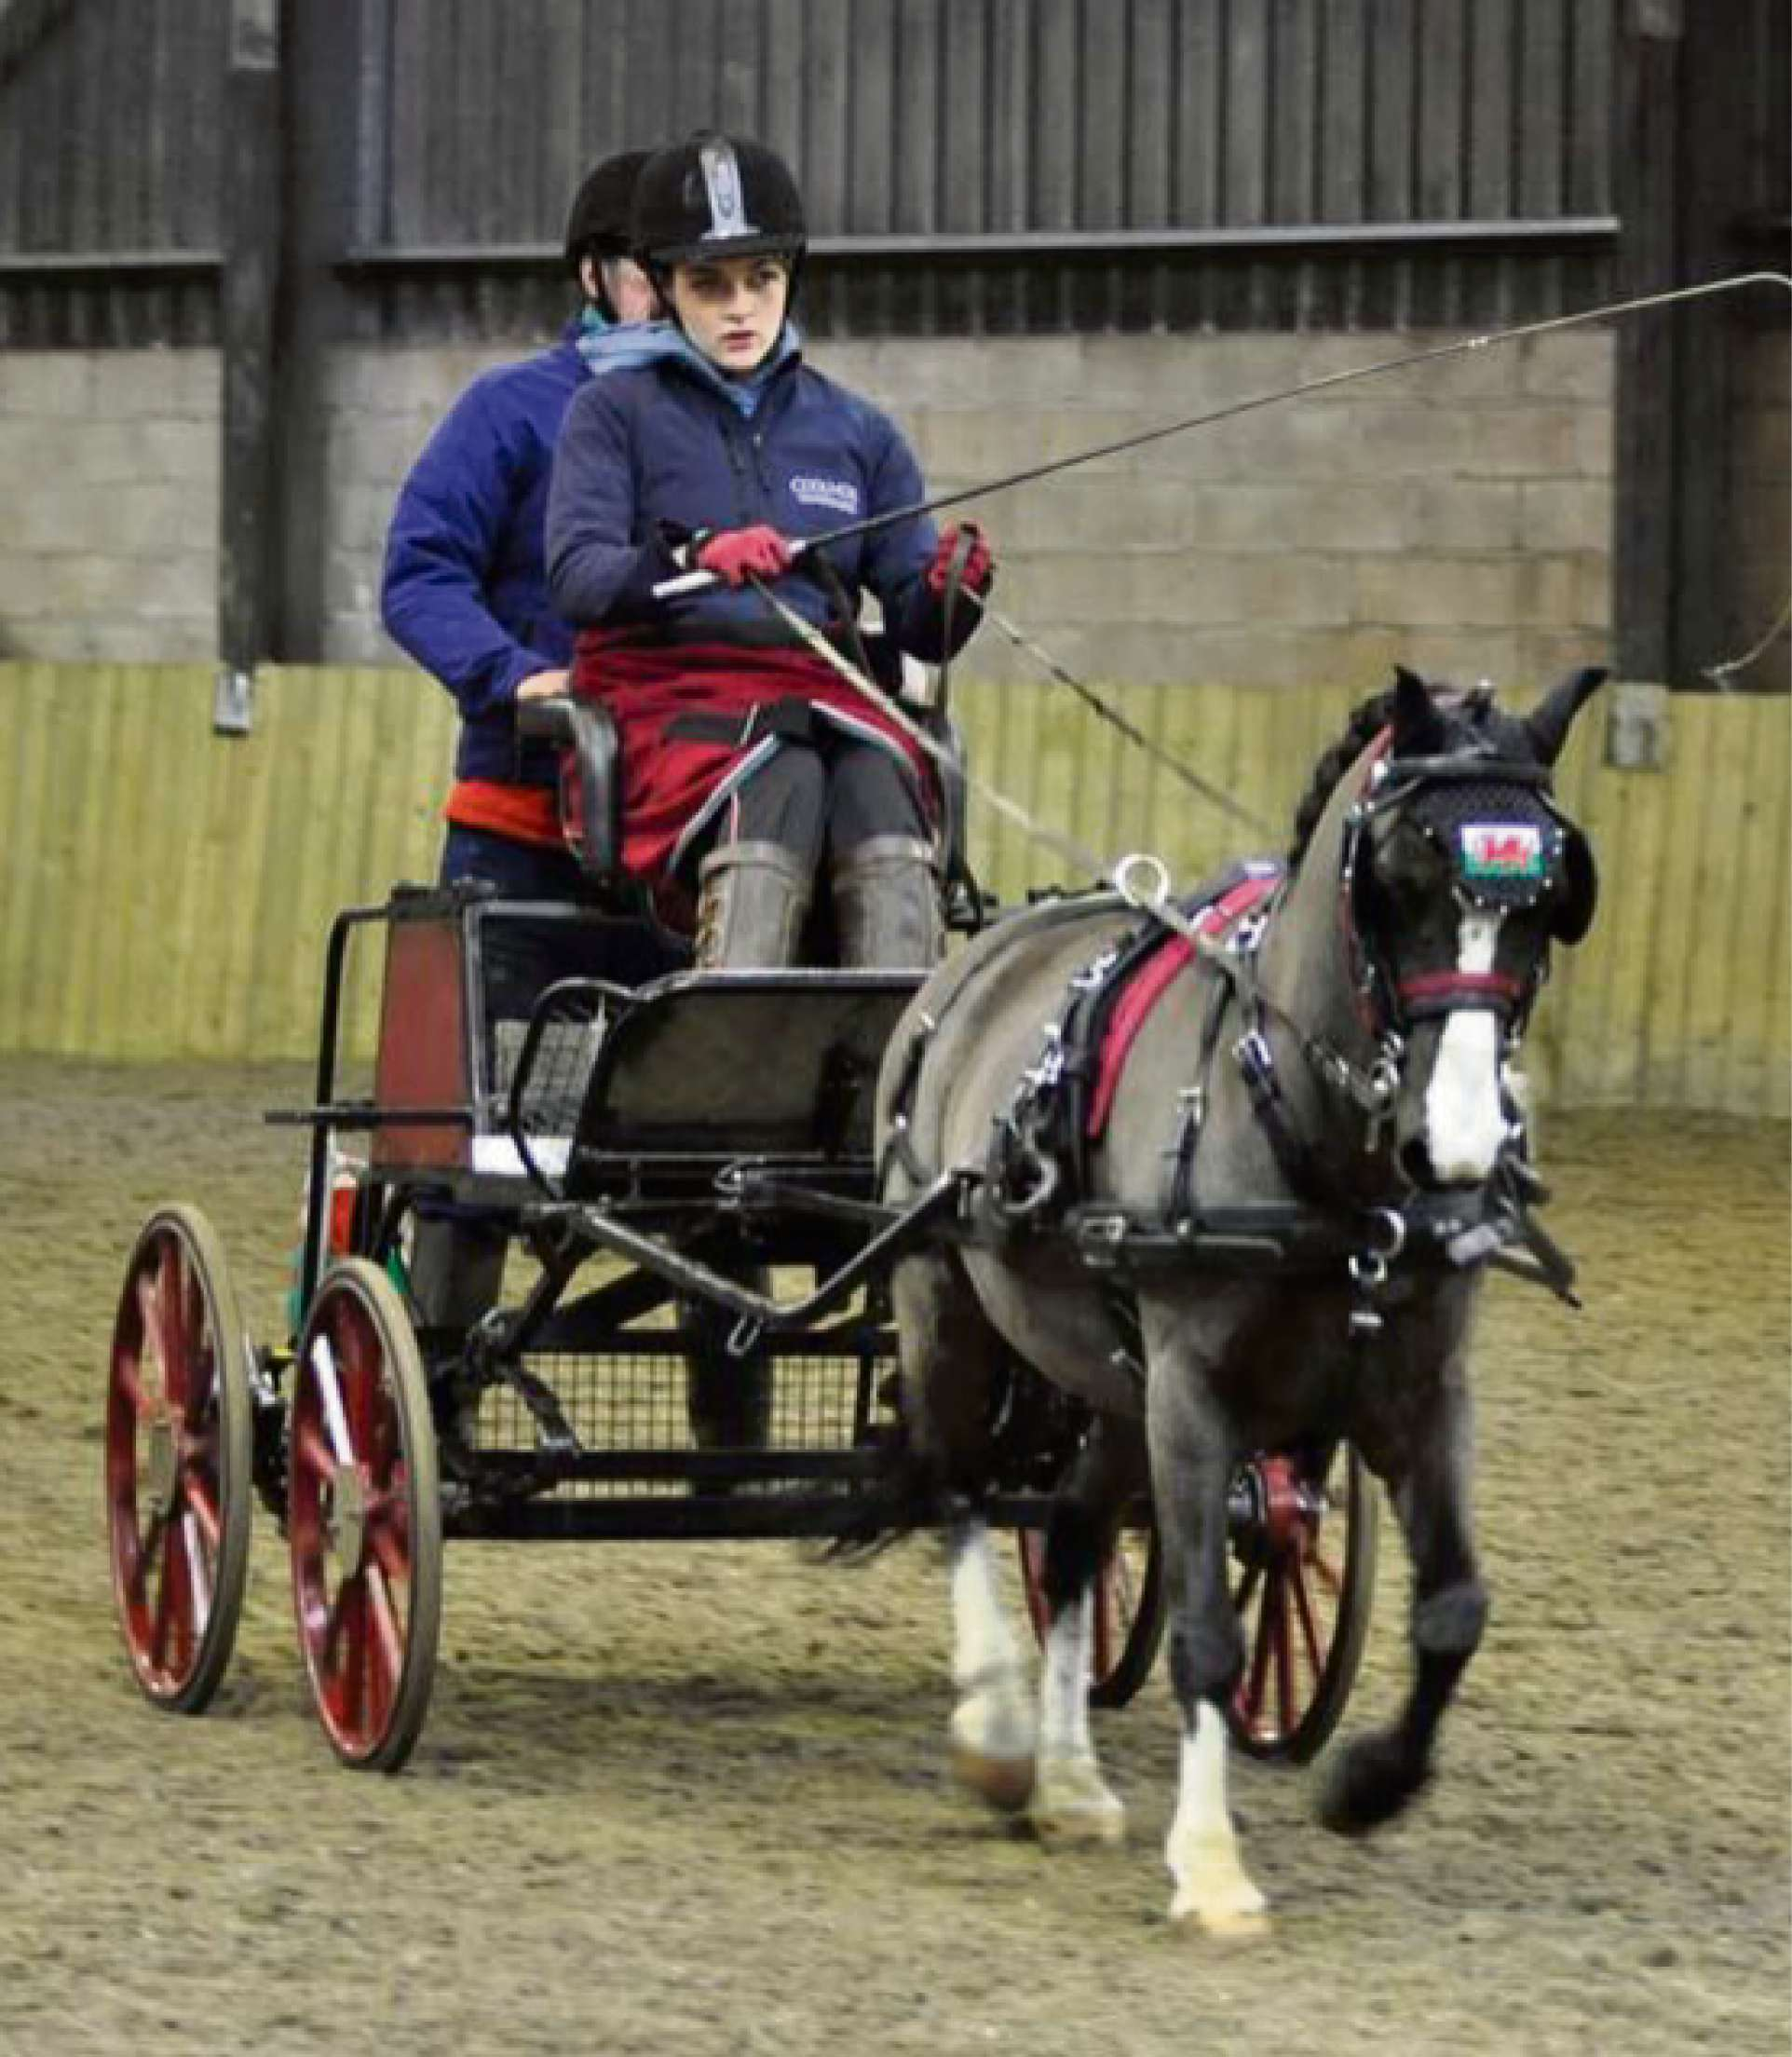 Horse carriage  thefts hit competition hopes